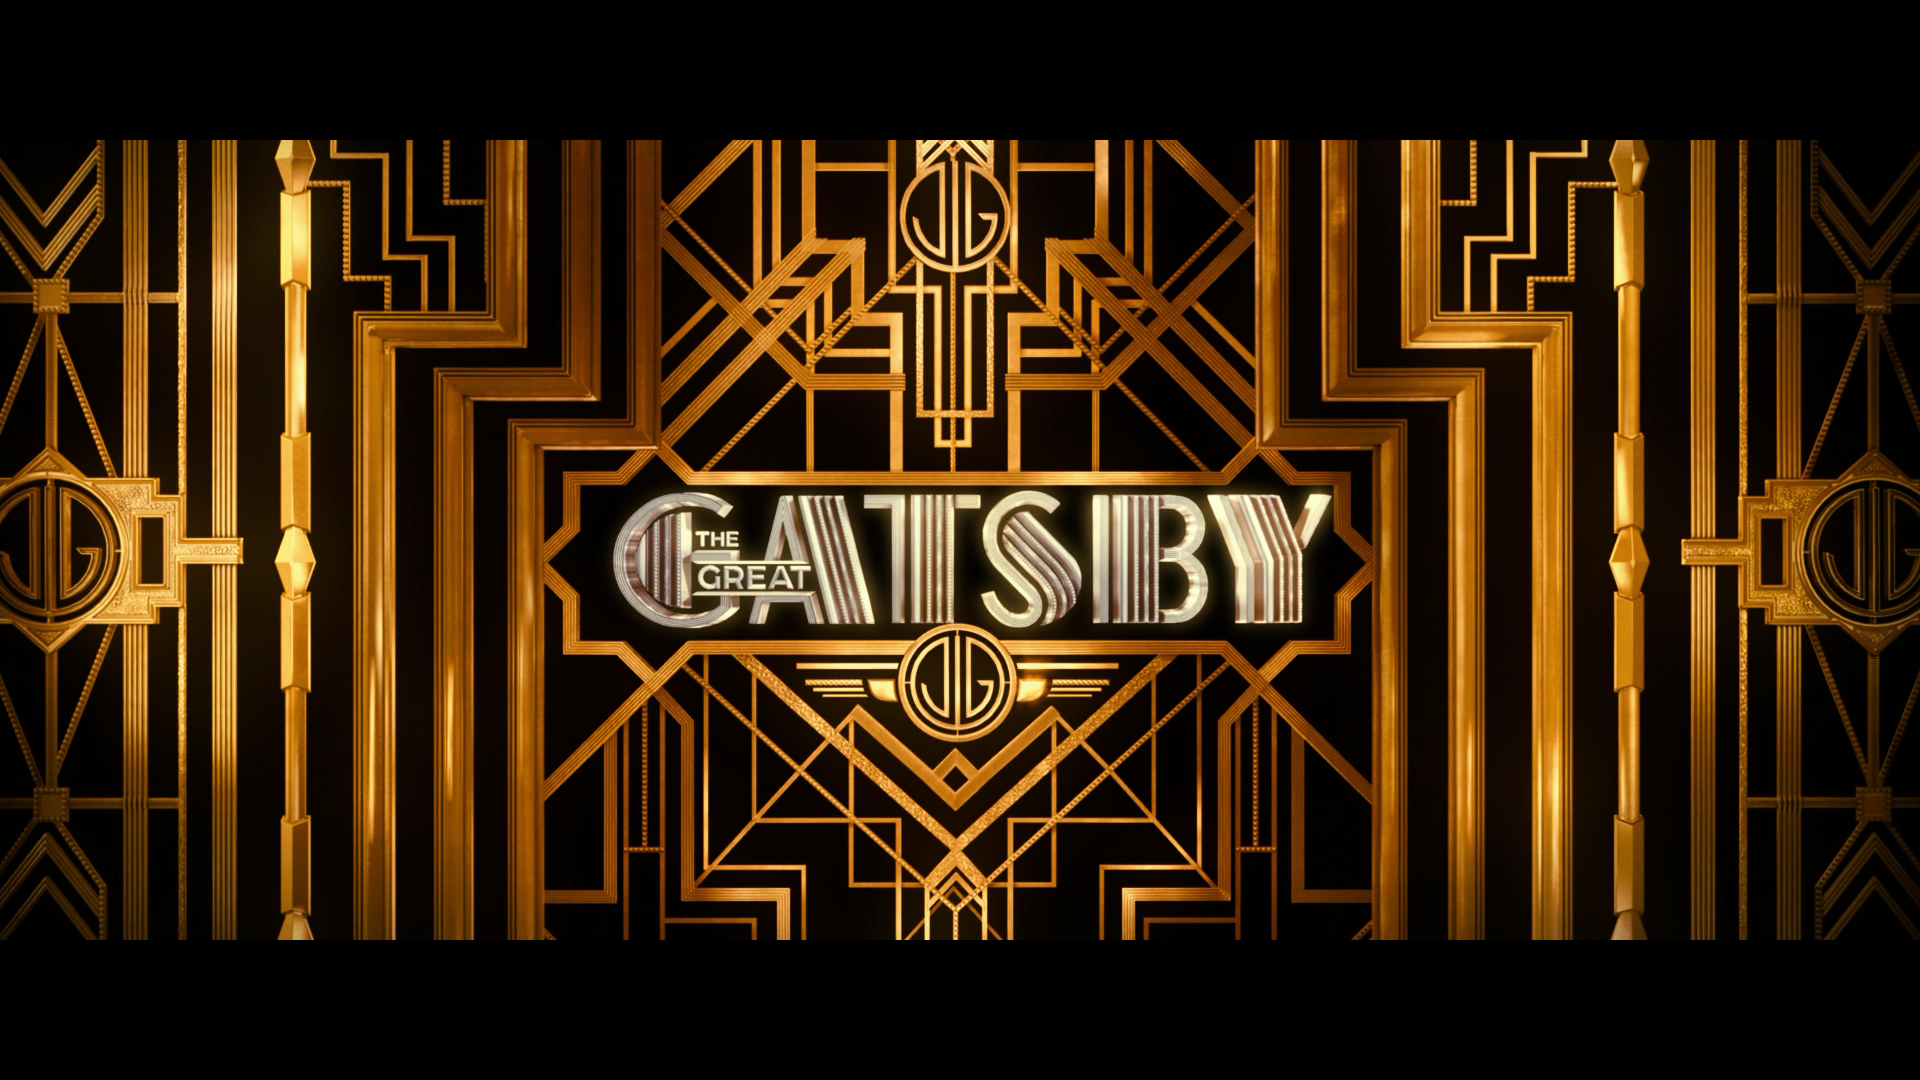 great gatsby The great gatsby is a 2013 period romantic drama film based on f scott fitzgerald's 1925 novel of the same namethe film was co-written and directed by baz luhrmann and stars leonardo dicaprio as the eponymous jay gatsby, with tobey maguire, carey mulligan, joel edgerton, isla fisher and elizabeth debicki.